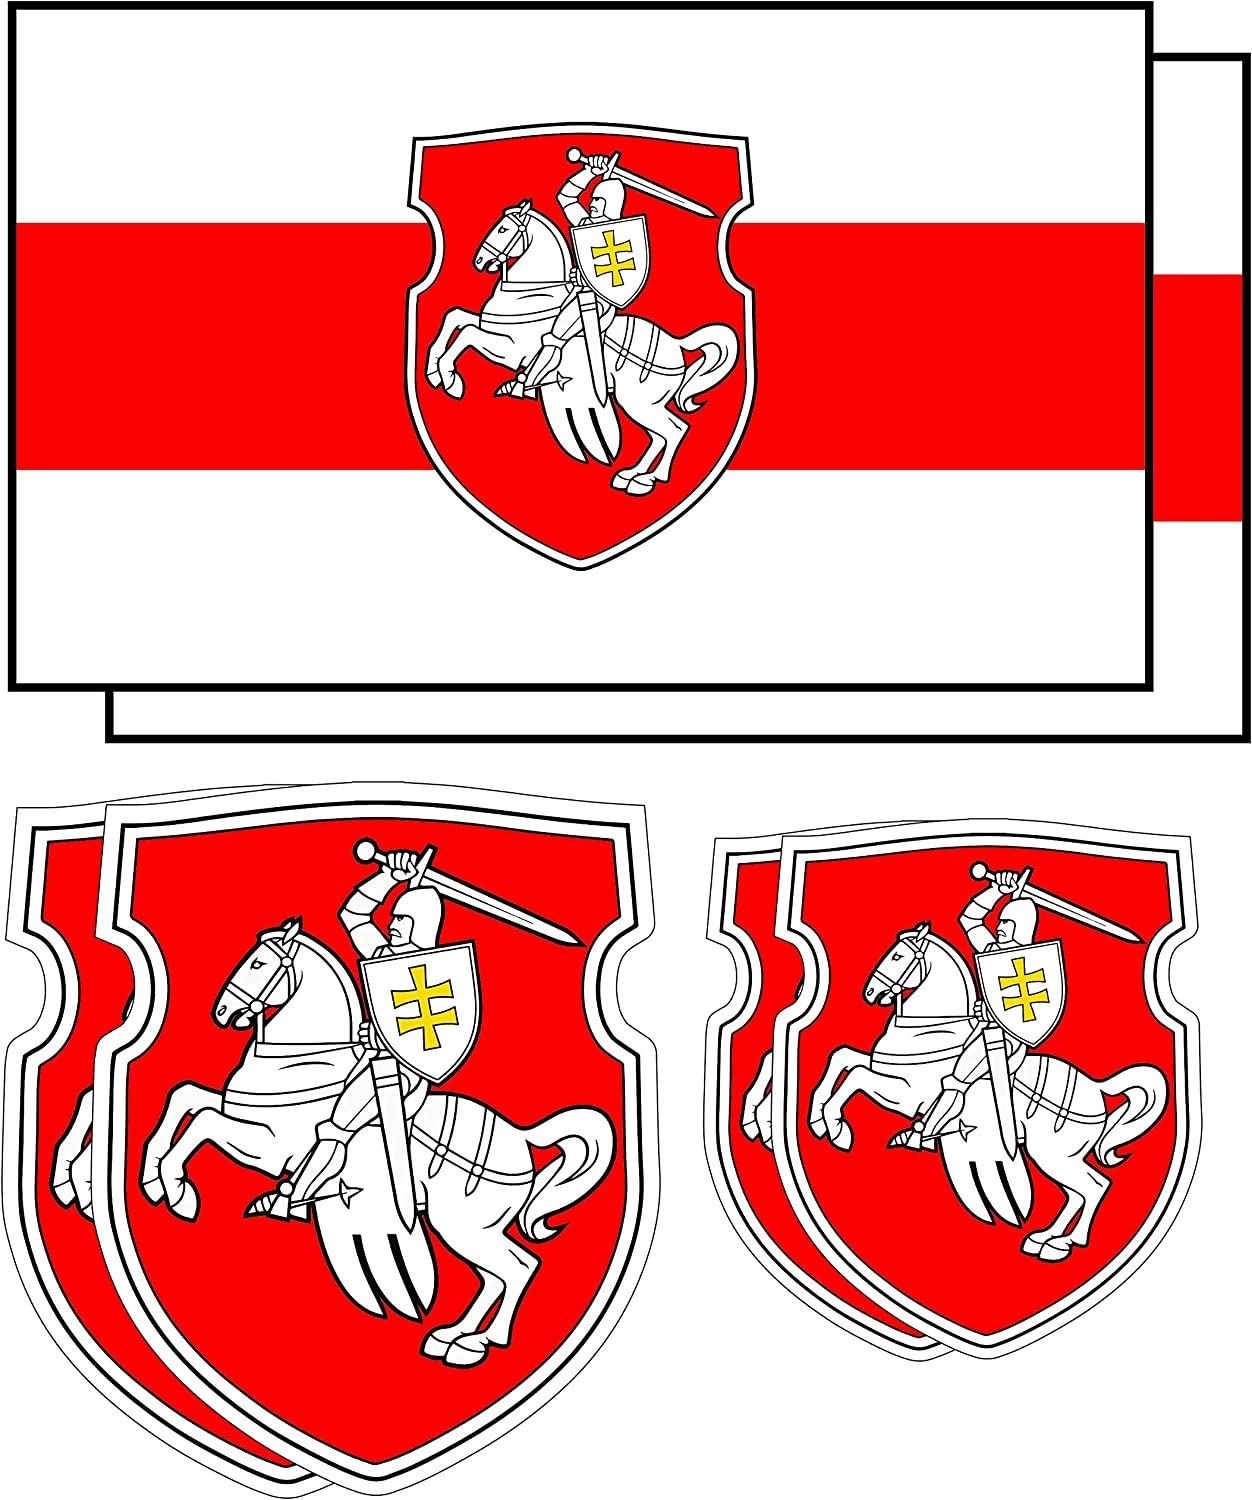 Belarus Pagonya Flag Vinyl Sticker Set - Belarus Pagonya Flag 1991 Car Bumper Sticker - White Knight Laptop Computer Stickers - White Red White Flag Decal Sticker